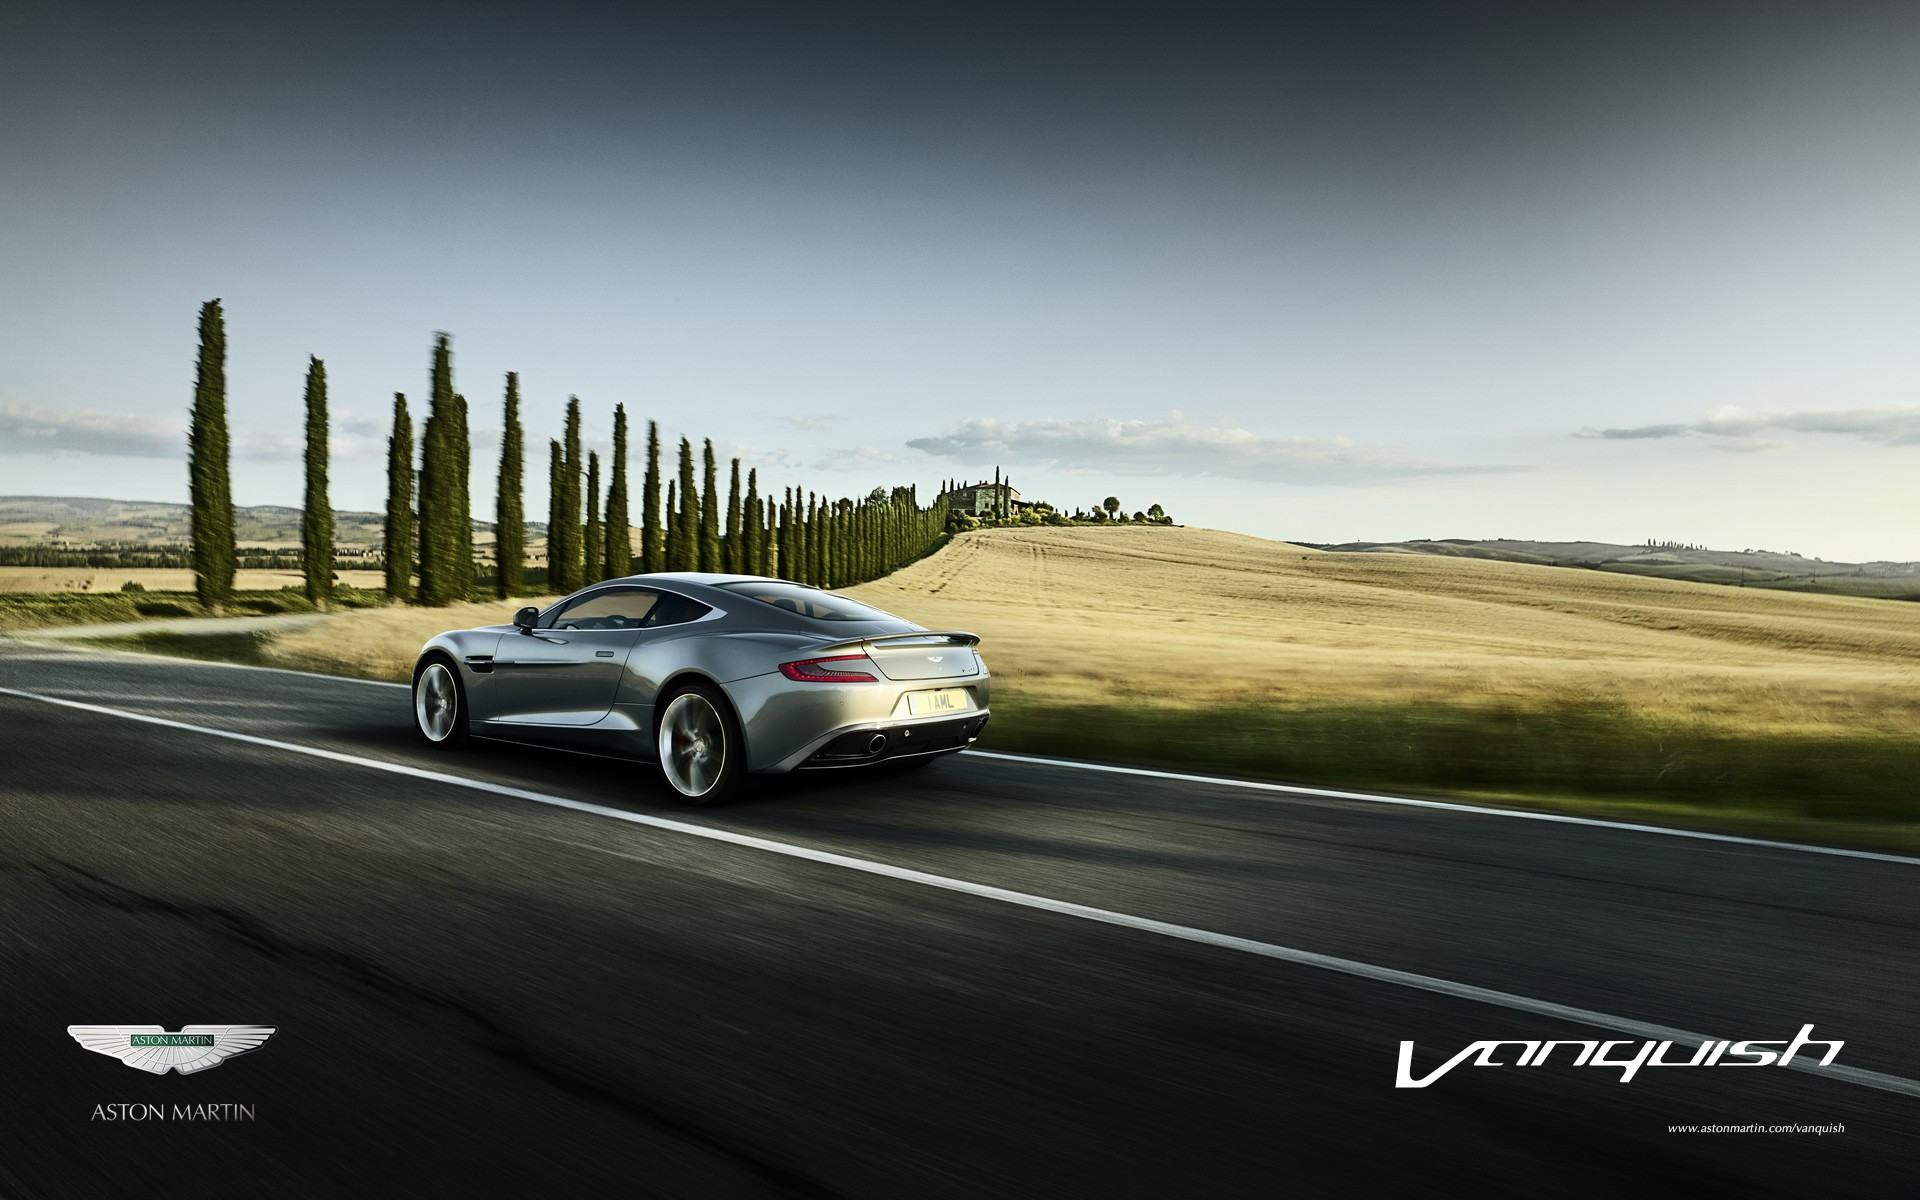 Aston Martin Wallpaper For Desktop 1920x1200